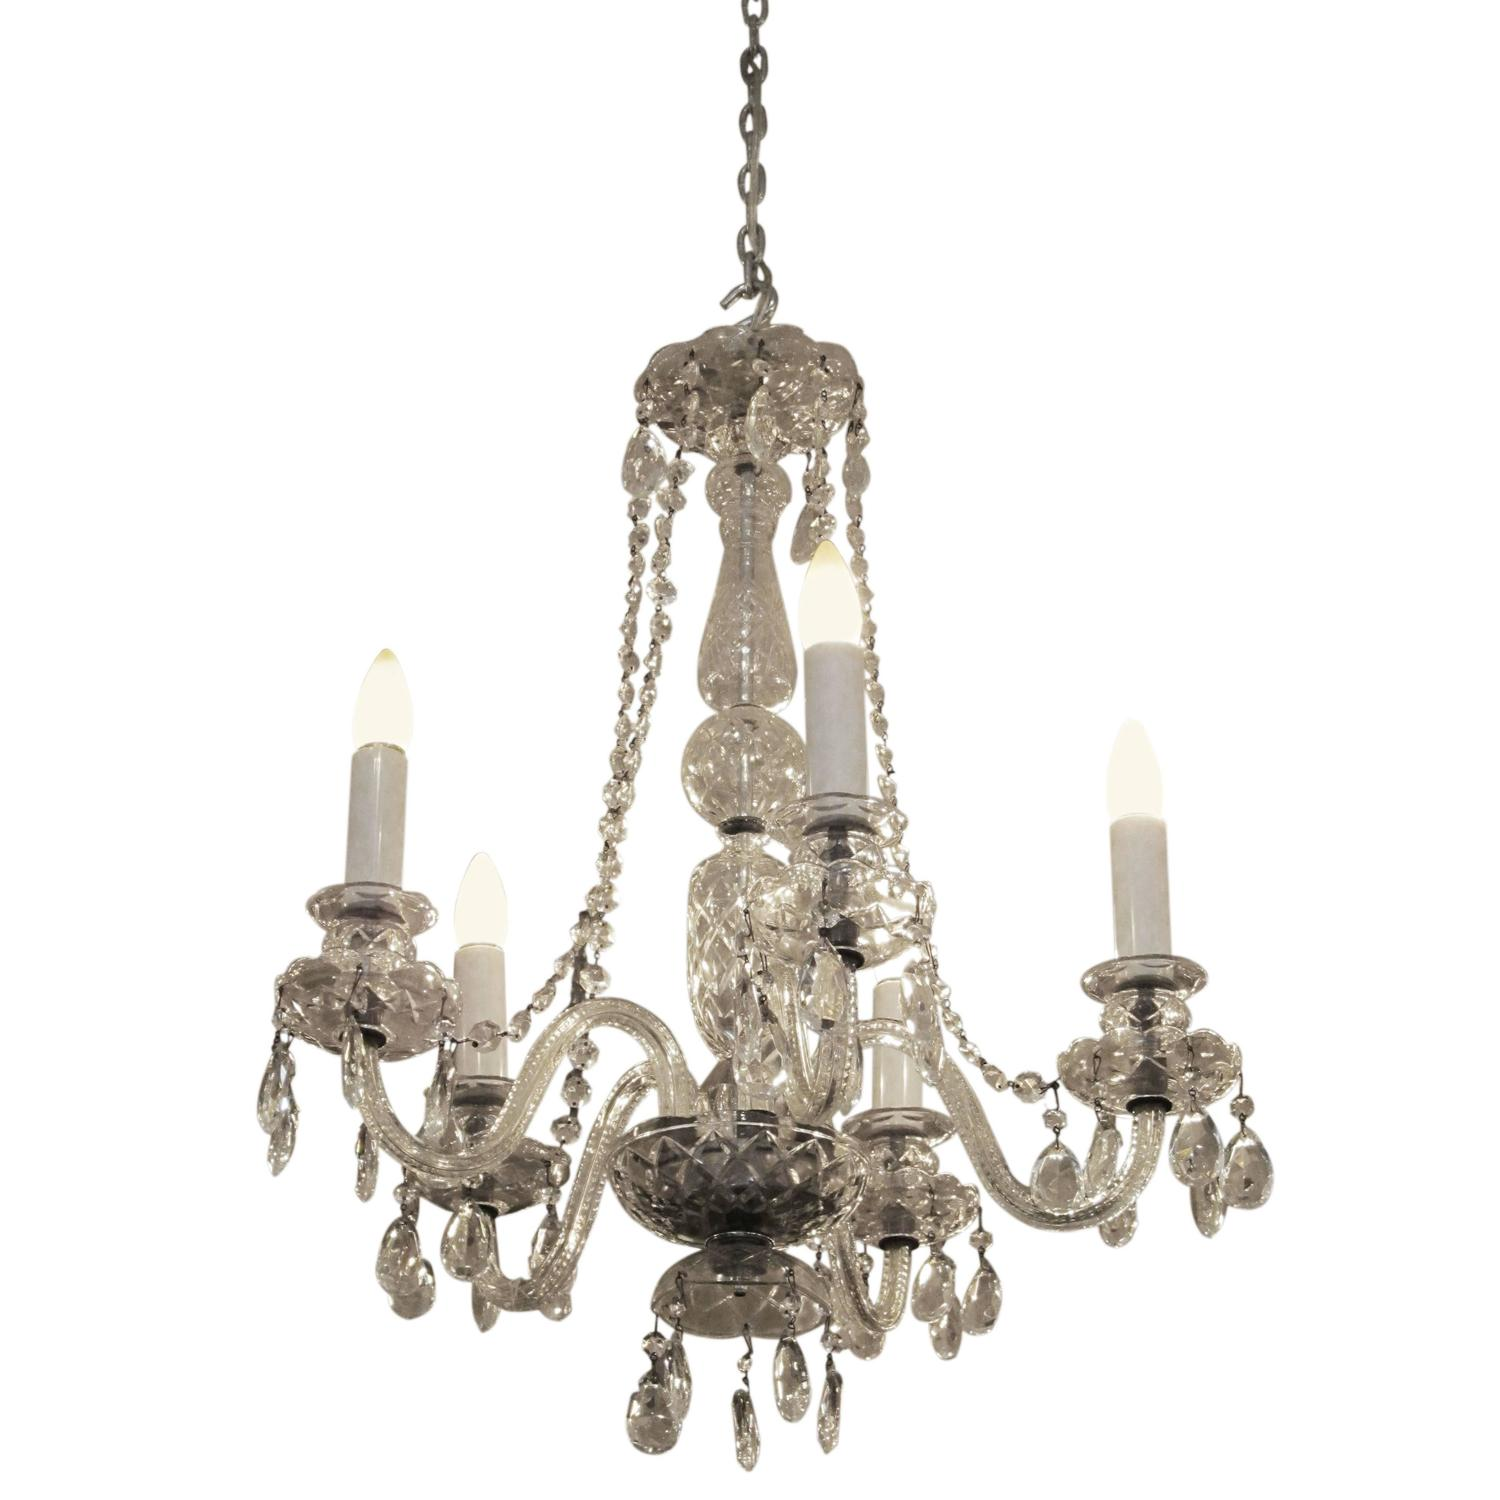 Waterford crystal chandeliers and pendants 9 for sale at 1stdibs 1940s restored waterford five arm chandelier with czech crystals aloadofball Images